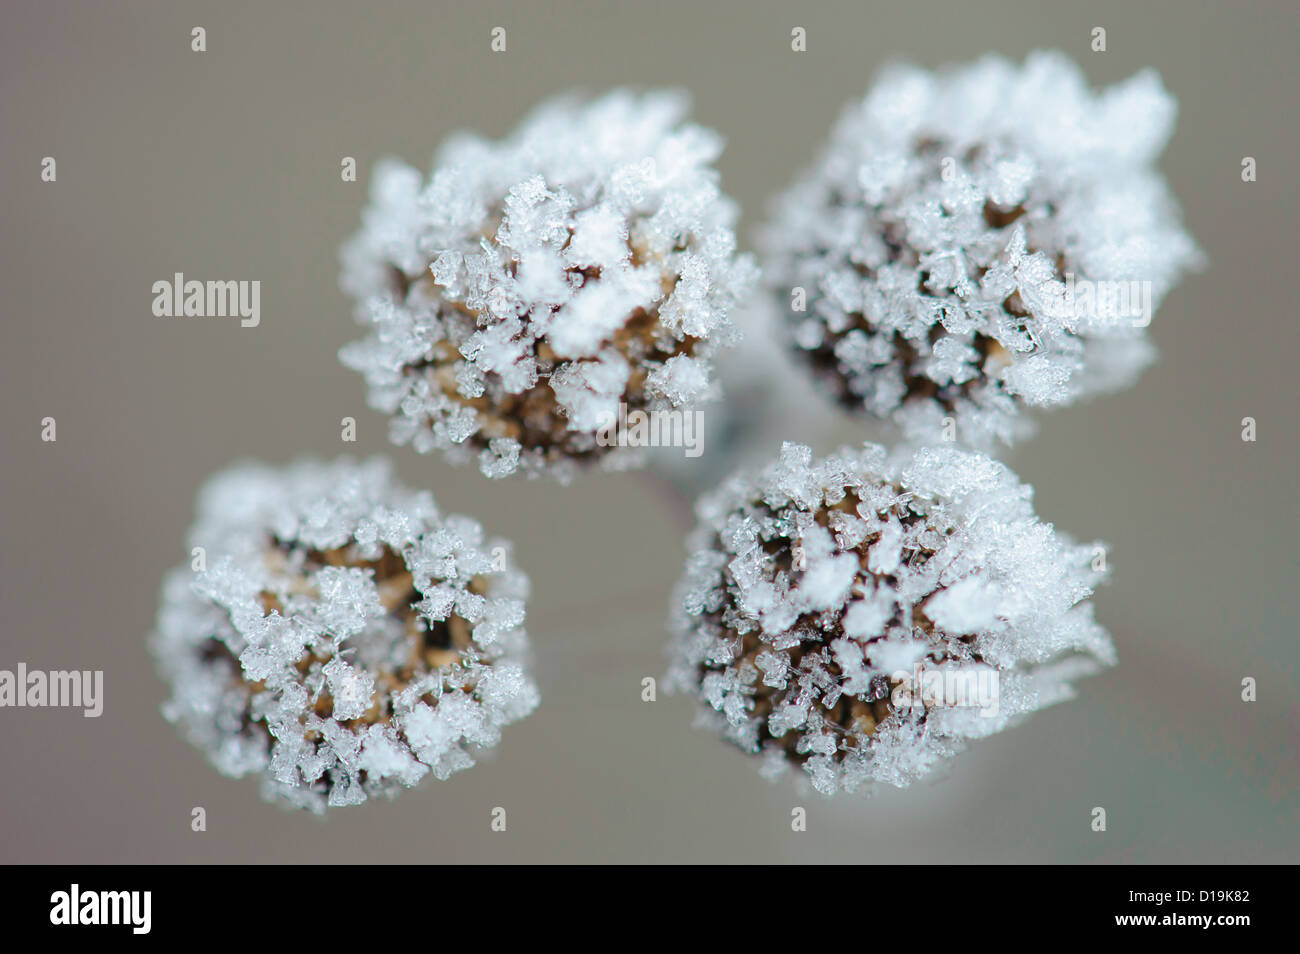 tansy (tanacetum vulgare) with ice crystals - Stock Image